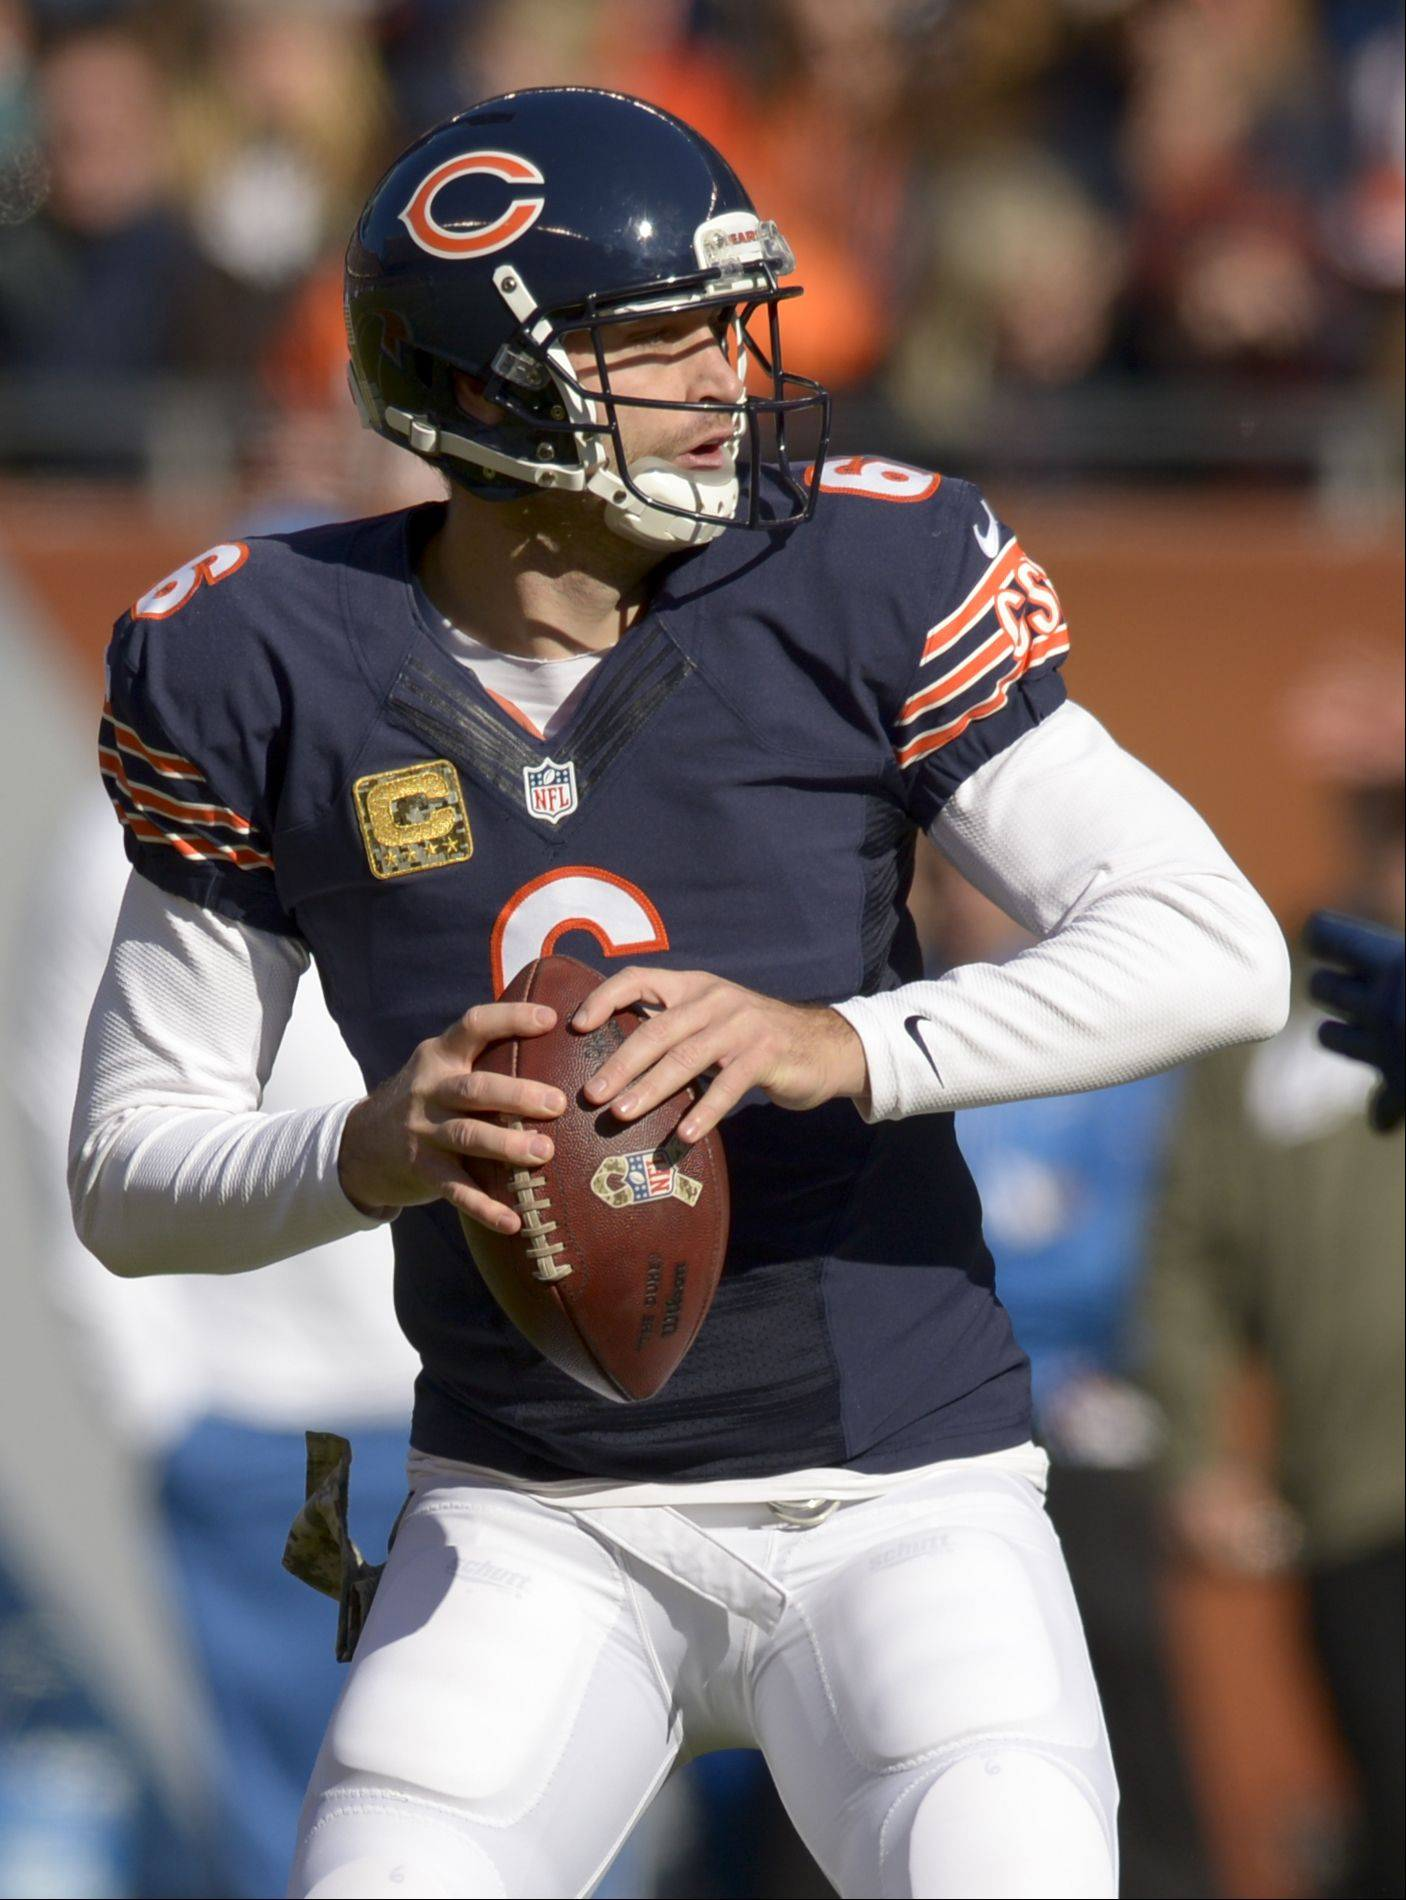 Bears quarterback Jay Cutler looks for an open man during the first half of the Bears 21-19 loss to the Detroit Lions at Soldier Field on Sunday.